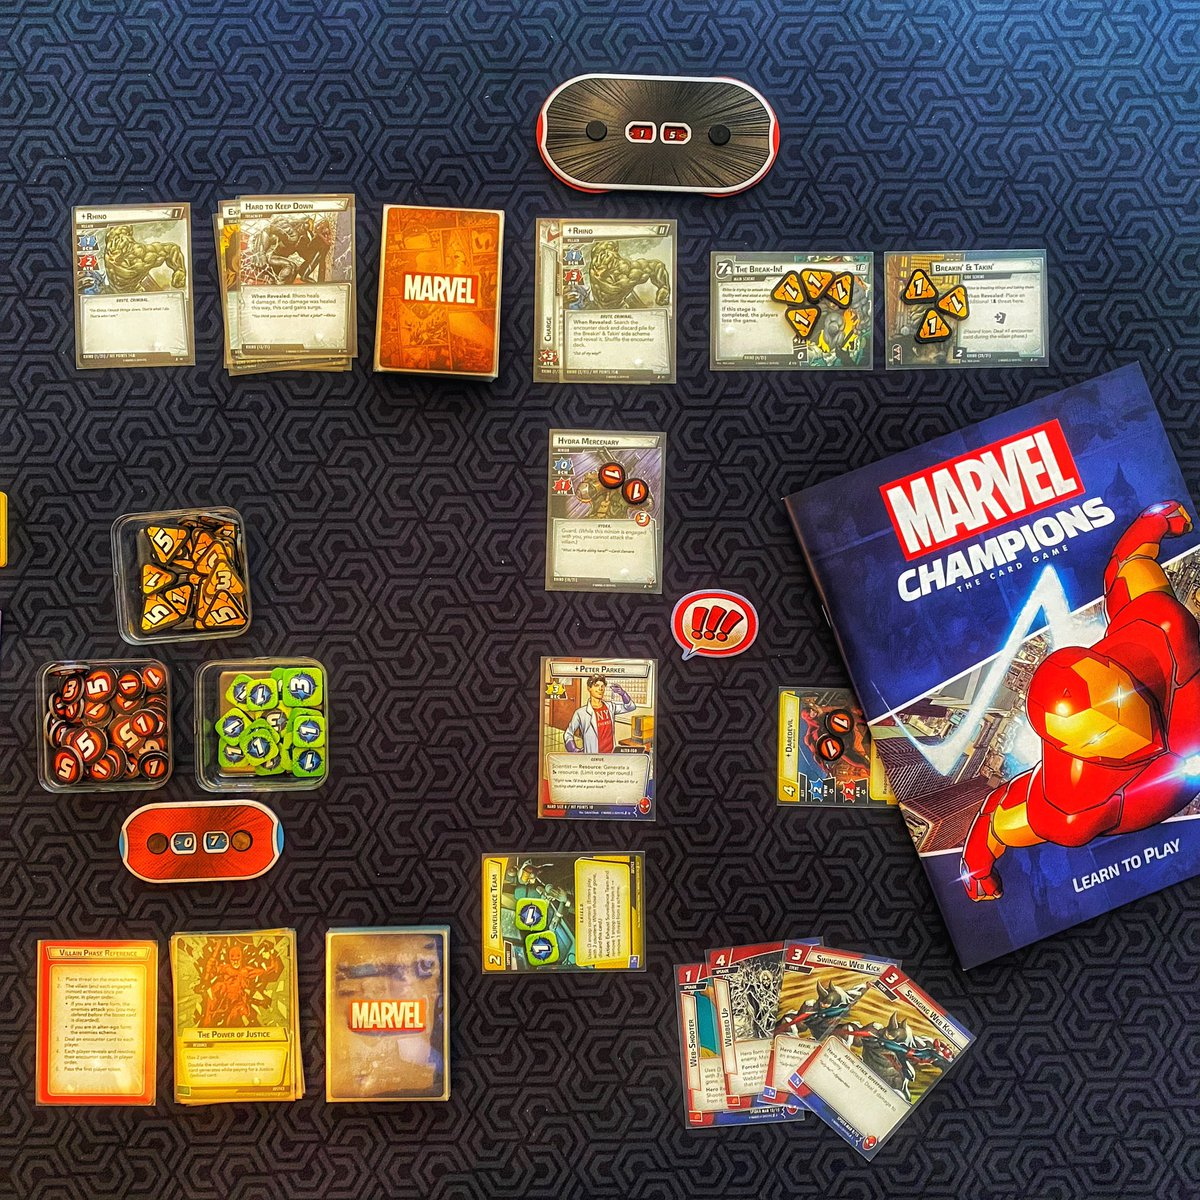 Today I got Marvel Champions to the table for the first time. This is an awesome game. No regret going all in, within a week of first purchase.  @FFGames #boardgame #boardgames #cardgame #lcg #marvel #marvelchampionspic.twitter.com/FmrN8GzmfR